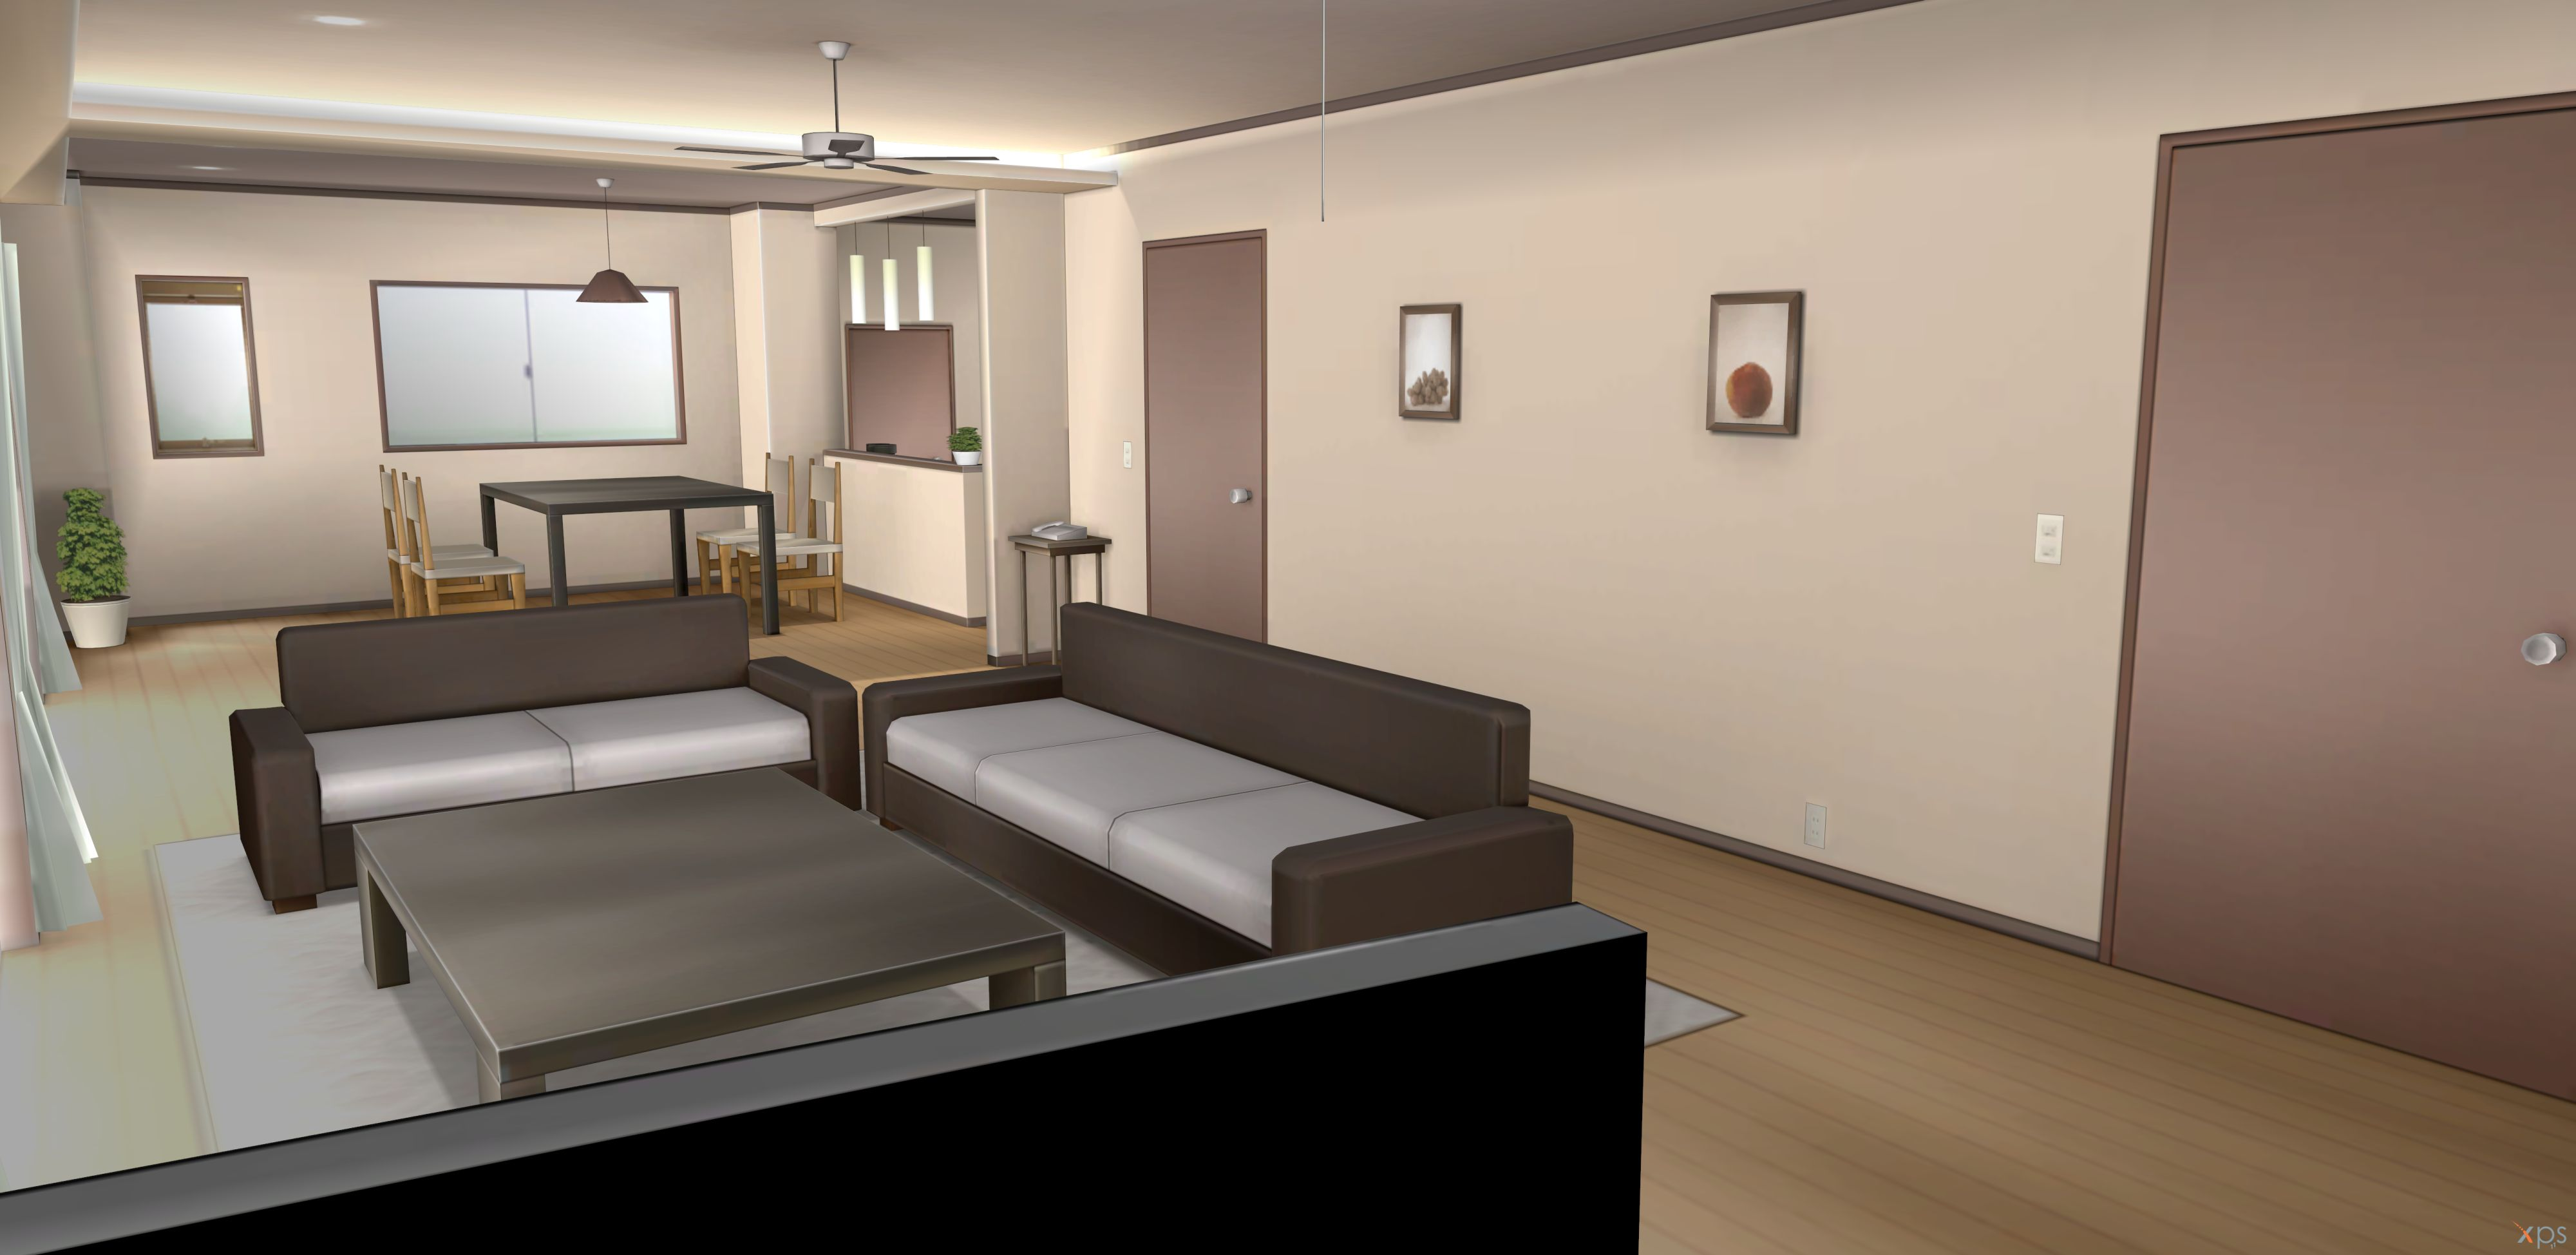 Interior design simulator ellis designs now thatus audio for Interior design simulator